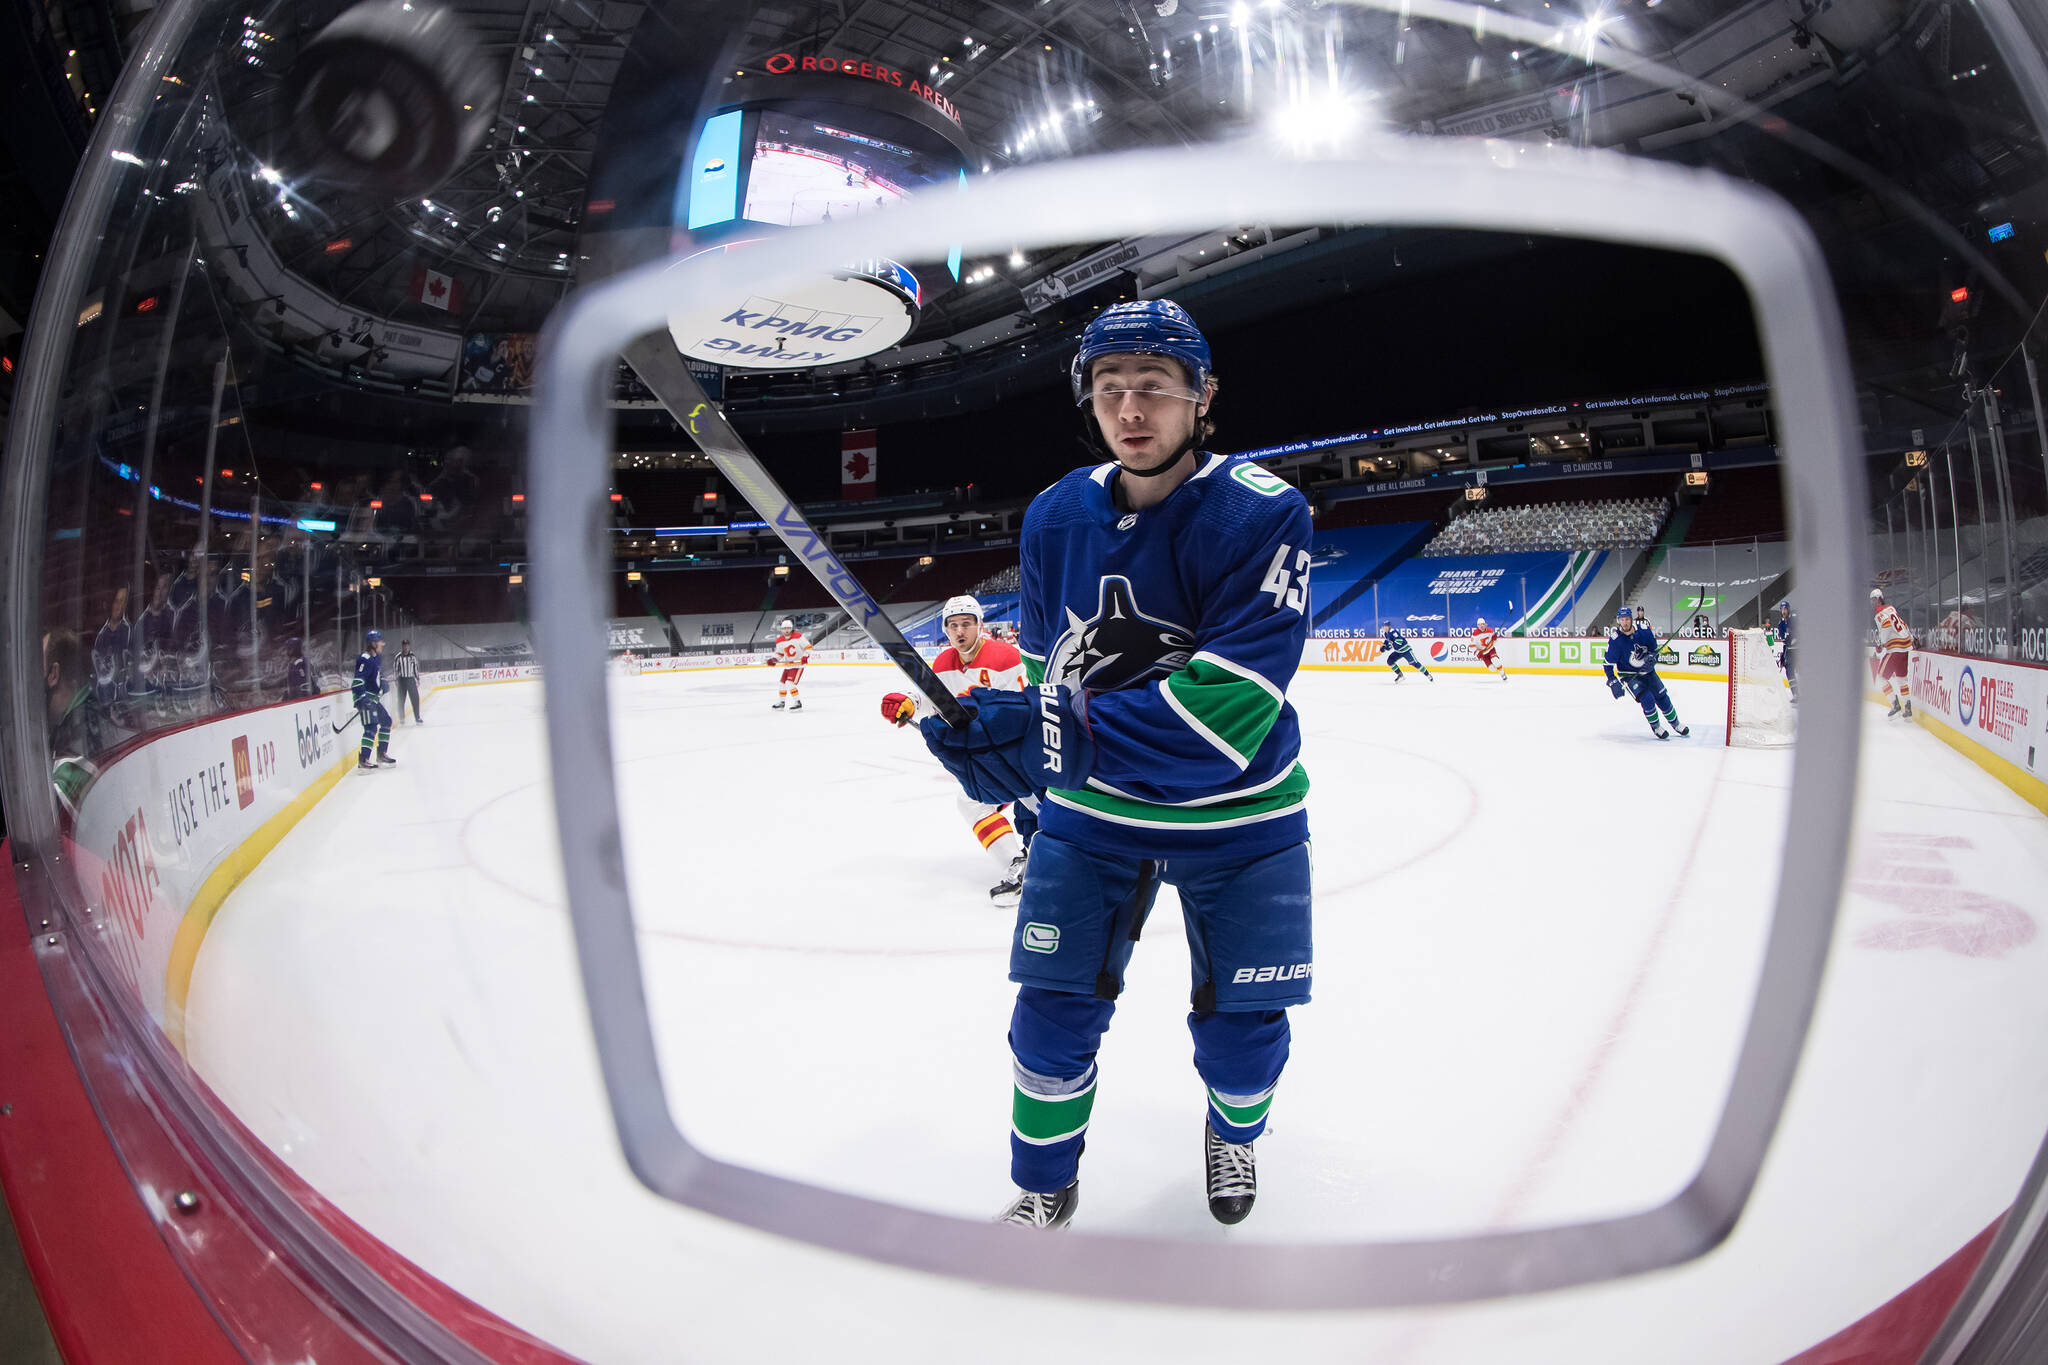 Vancouver Canucks' Quinn Hughes reaches for the puck as it bounces off the glass after being shot around the boards during first period NHL hockey action against the Calgary Flames in Vancouver, on Tuesday, May 18, 2021. THE CANADIAN PRESS/Darryl Dyck